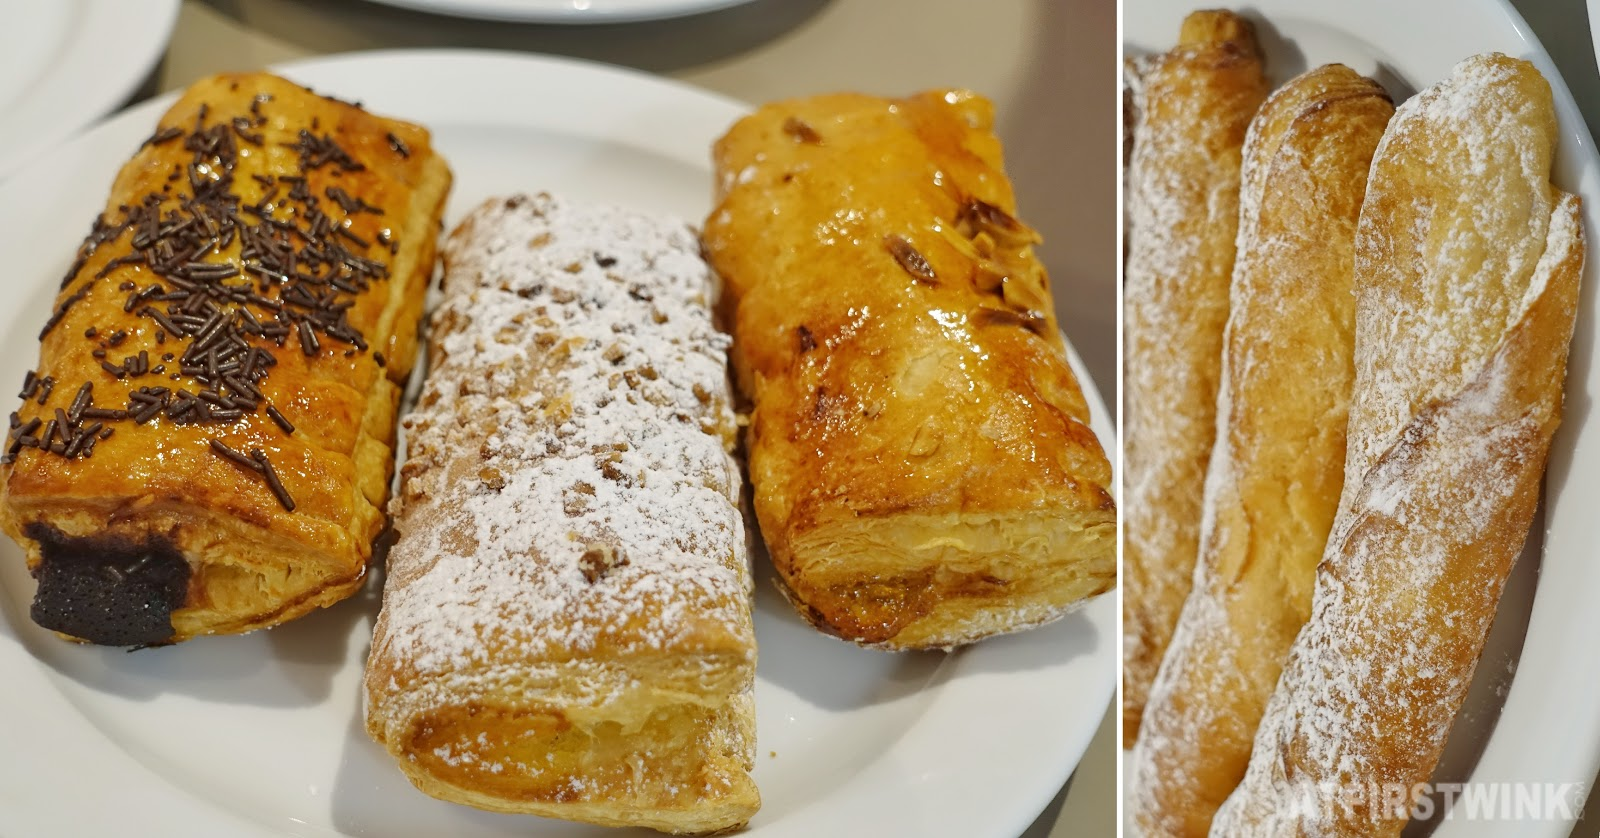 Barcelona bakery audrey fresh pastries chocolate vanilla cream apricot jam powdered sugar sticks